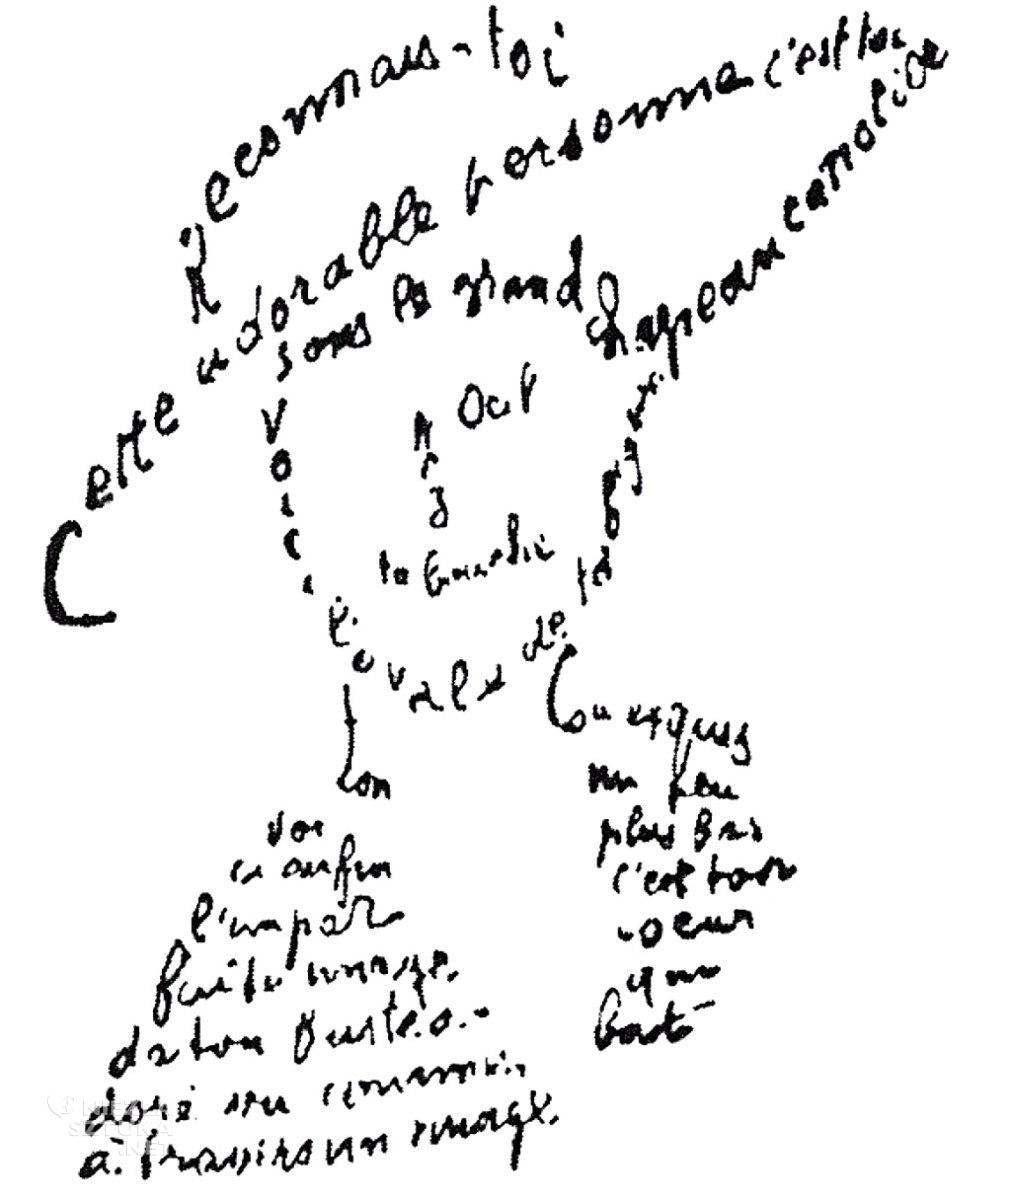 Guillaume Apollinaire Kaligramy | 1918, fot.: wikipedia.org